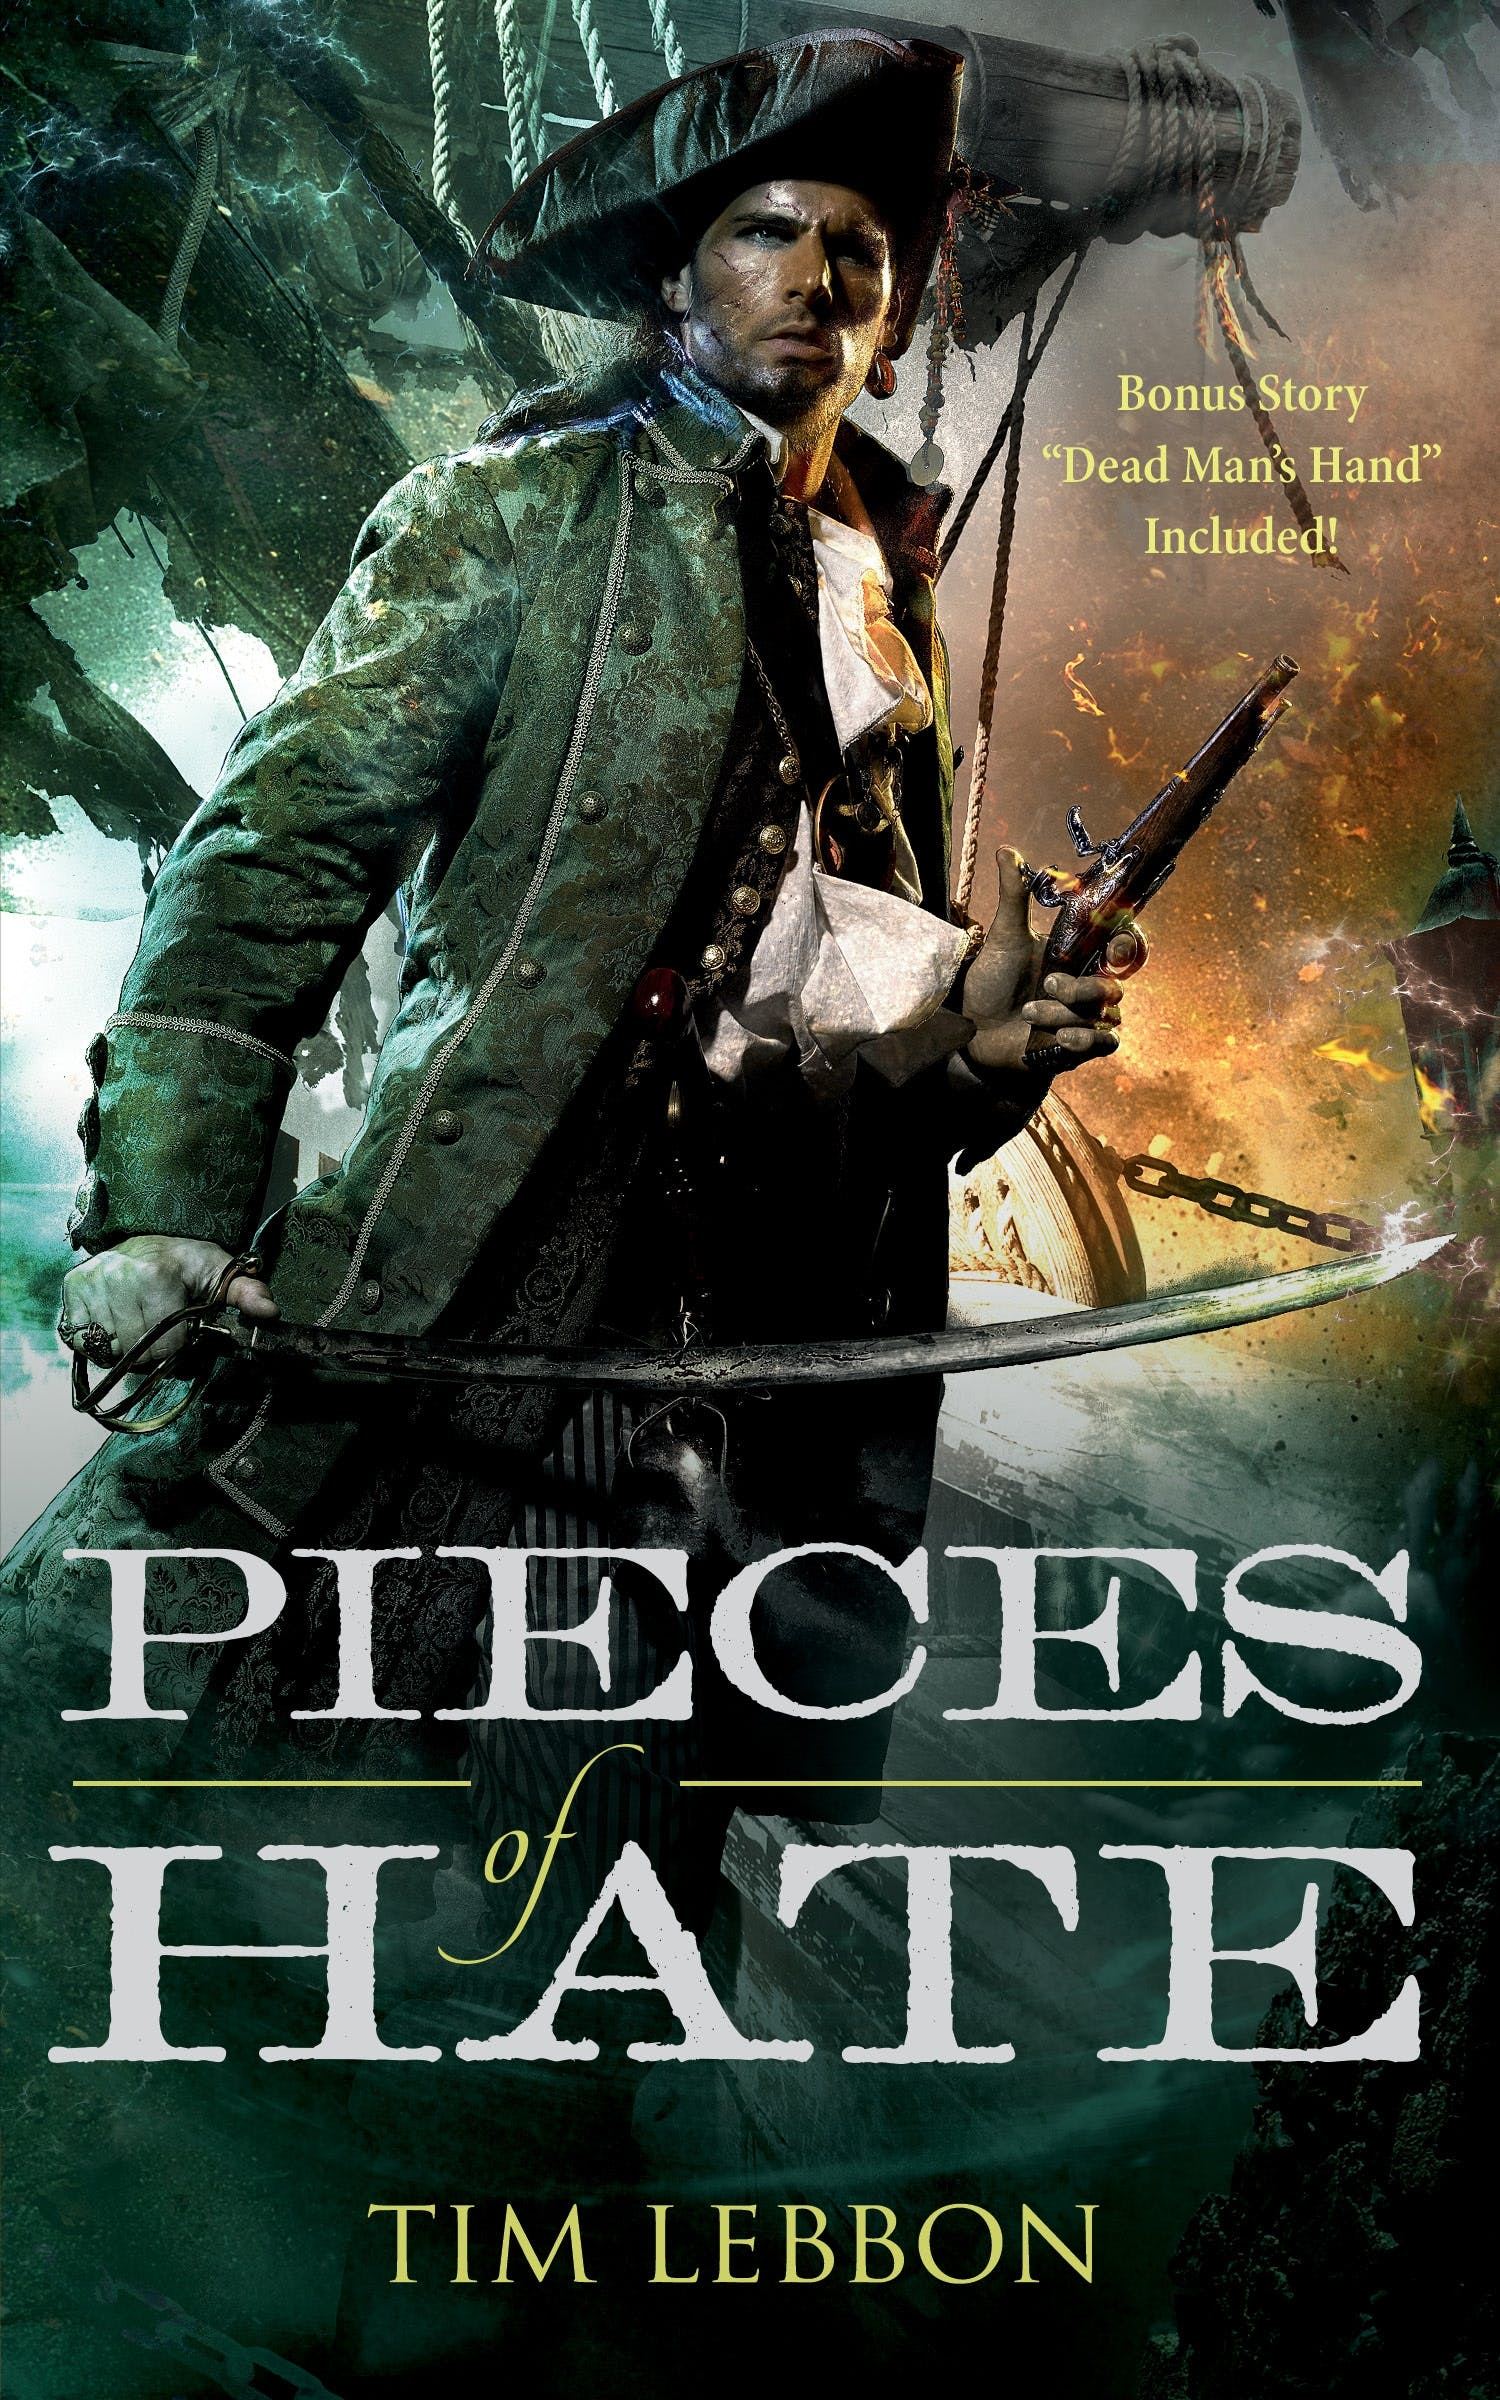 Image of Pieces of Hate